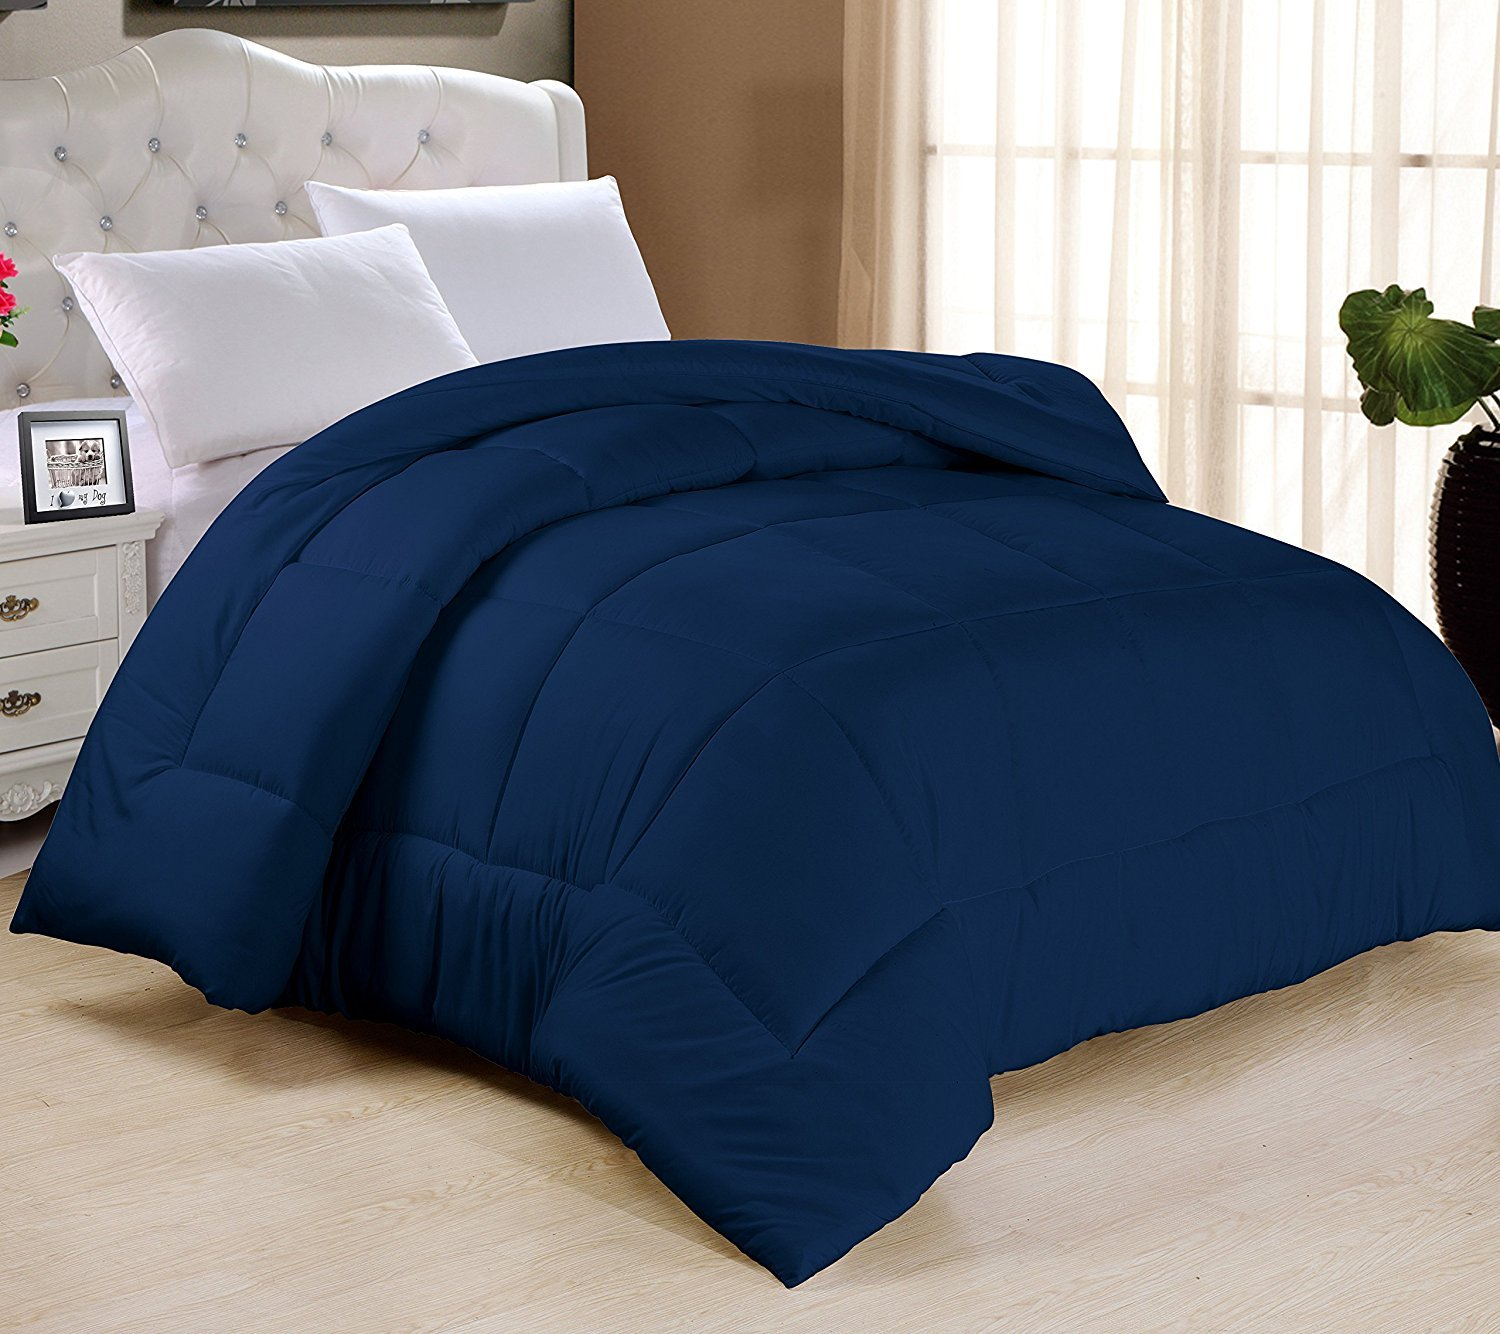 "Swift Home All-Season Extra Soft Luxurious Classic Light-Warmth Goose Down-Alternative Comforter, King 104"" x 90"", Navy"